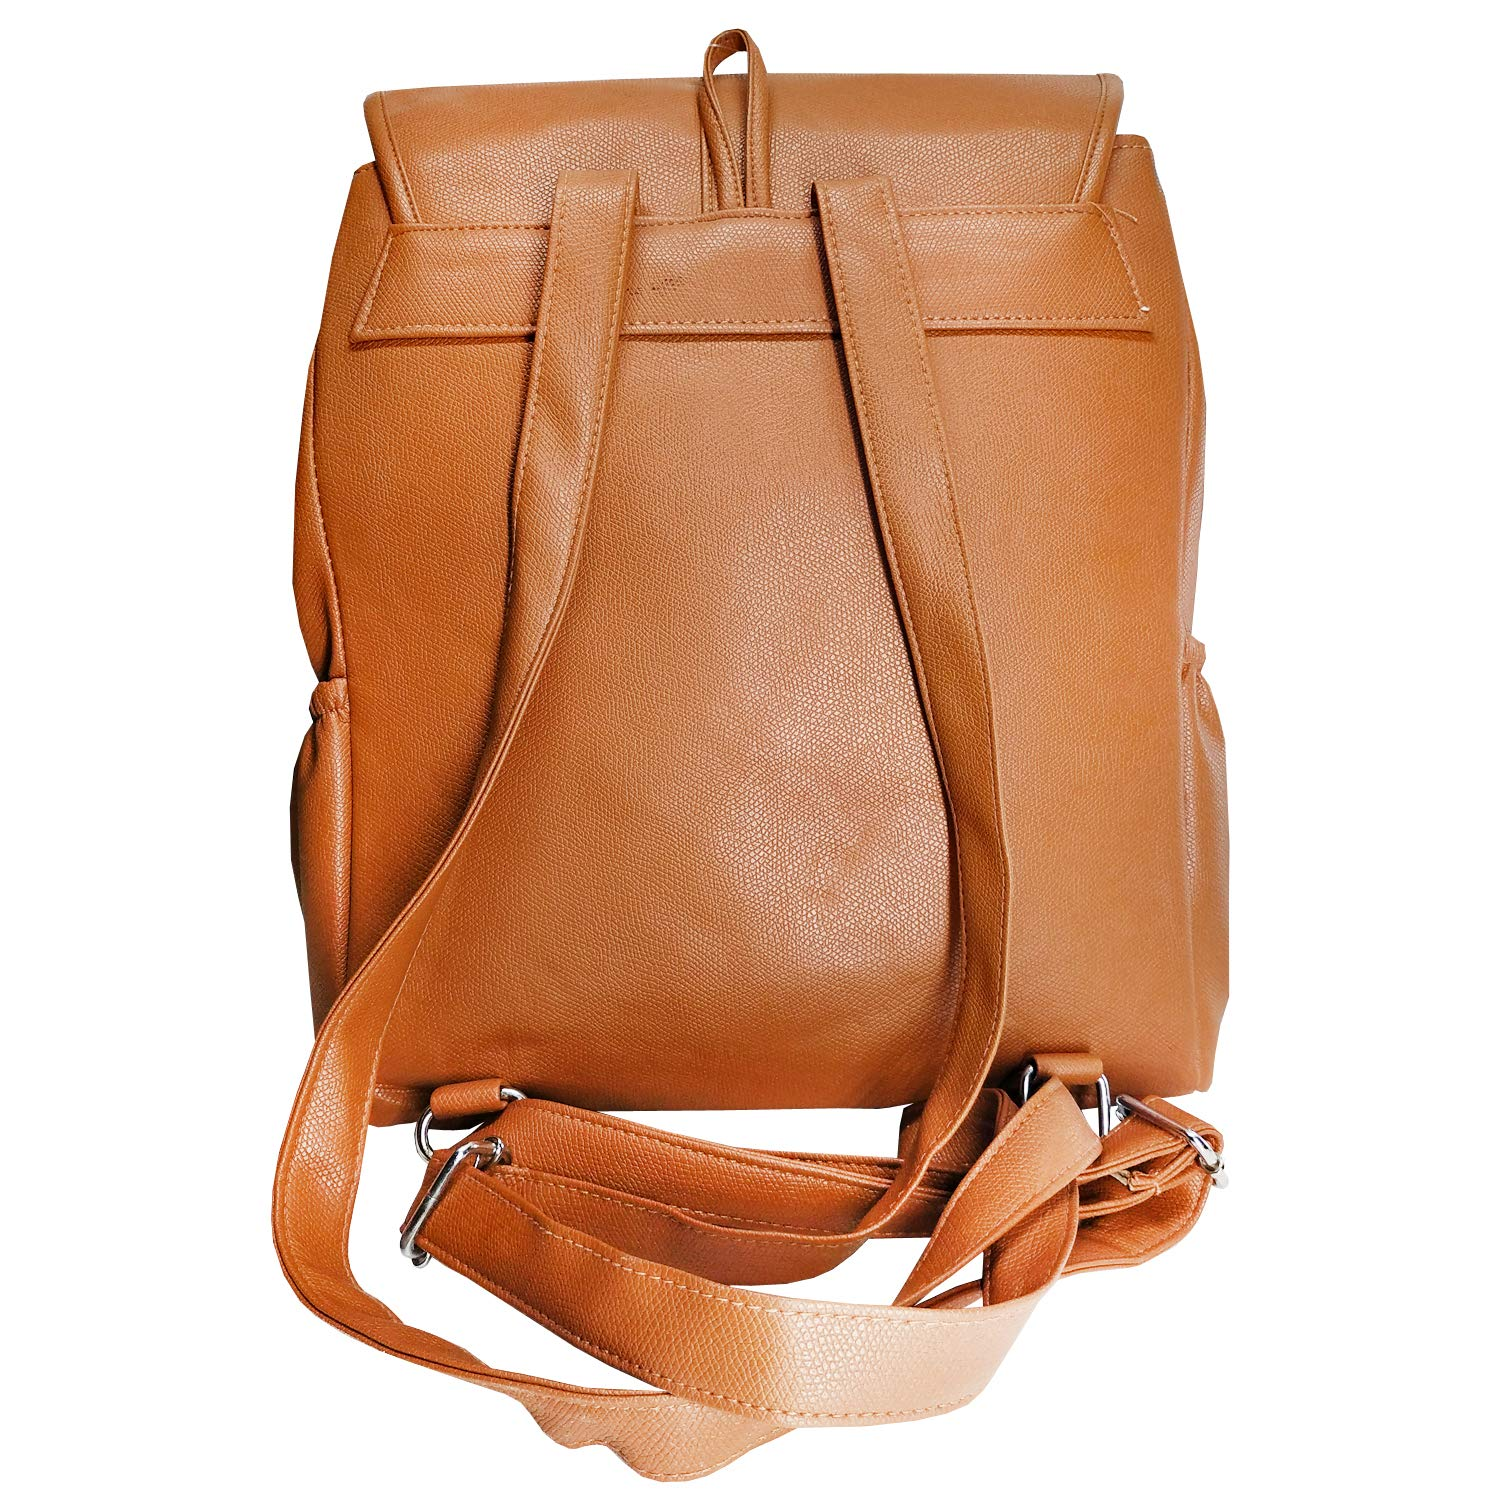 Artificial Leather Student Backpack For Girls (Brown) - Bagaholics Gift